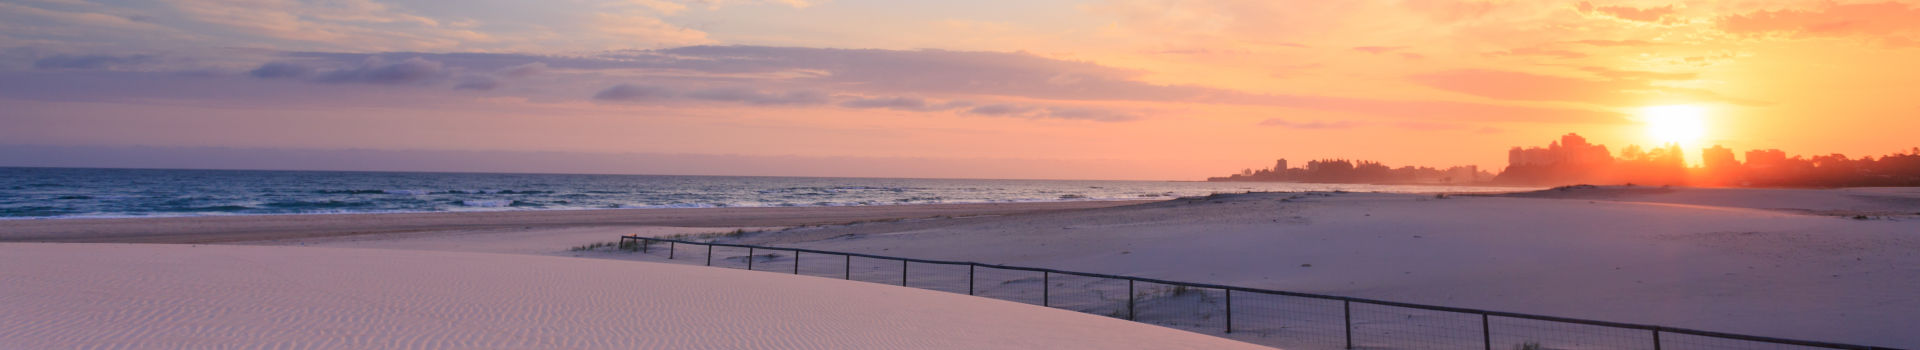 Redseason - Holidays - Kirra Beach At Sunrise (queensland, Australia)